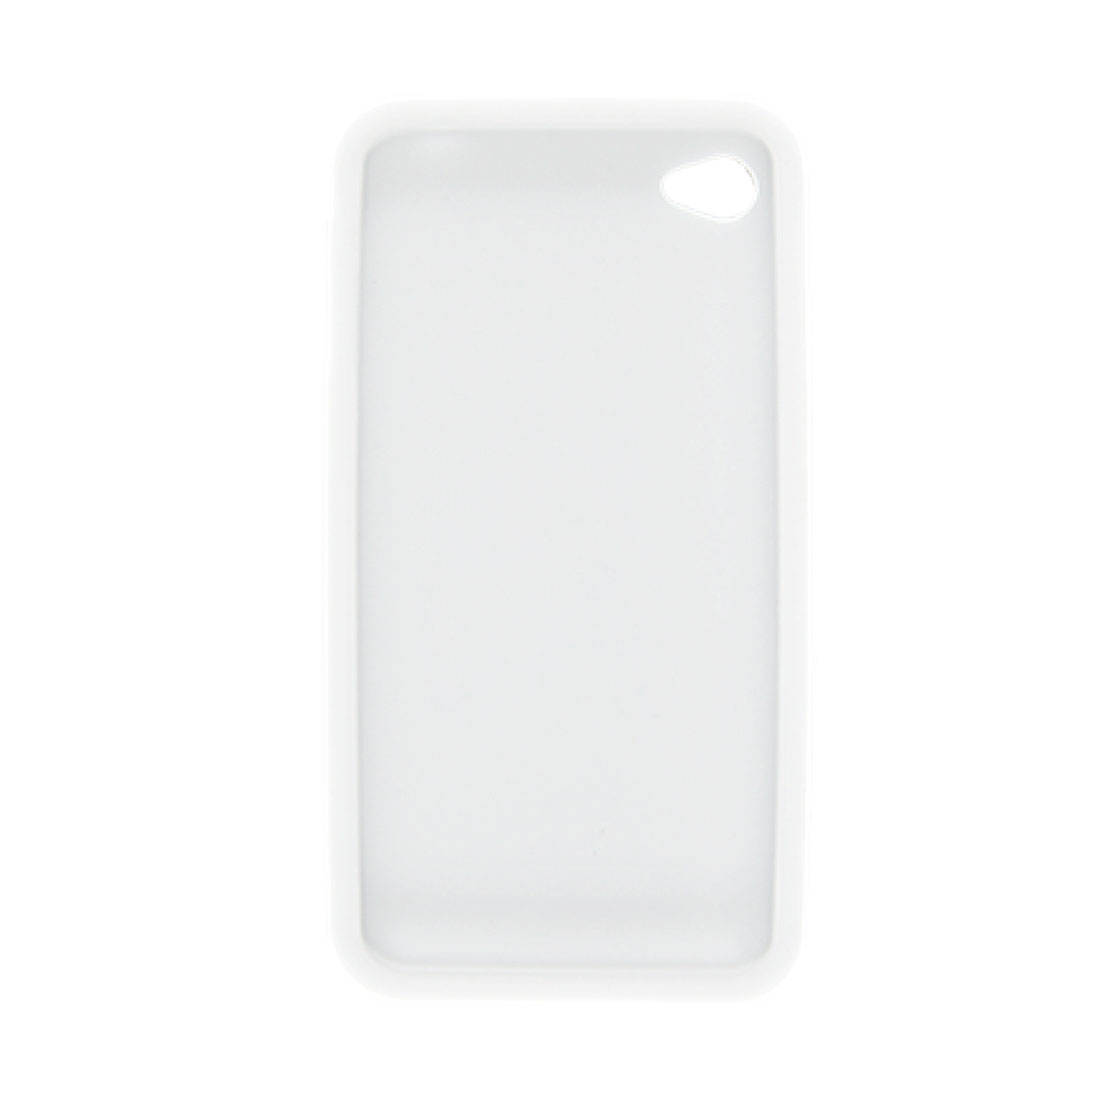 White Silicone Back Case + Screen Guard for Apple iPhone 4 4G